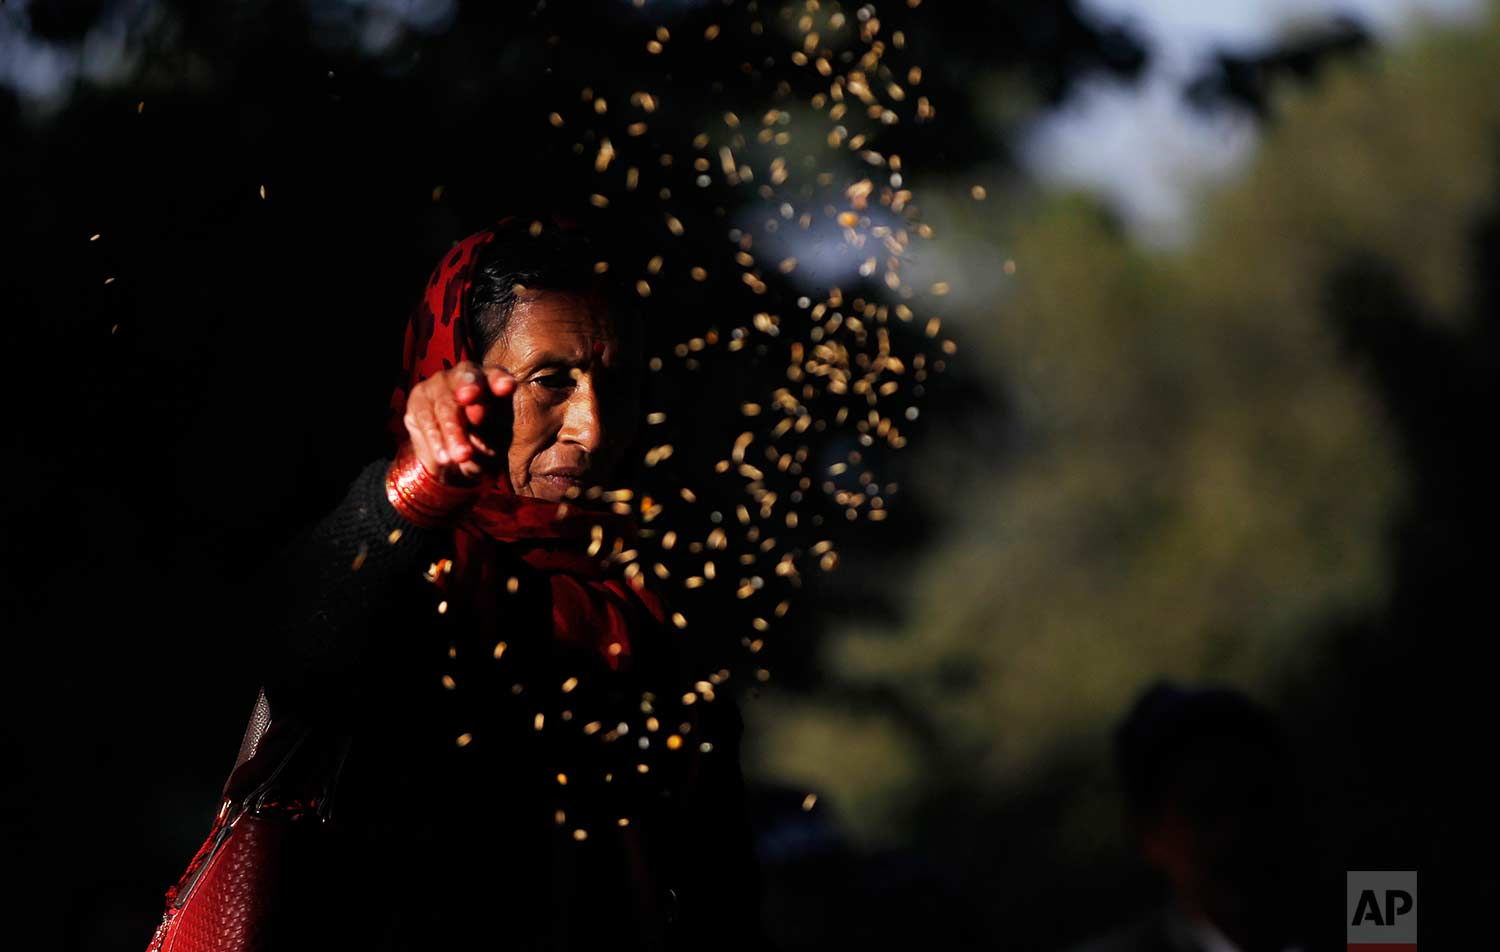 A woman scatters grains during Bala Chaturdashi festival in the courtyard of Pashupatinath temple in Kathmandu, Nepal, Friday, Nov. 17, 2017. (AP Photo/Niranjan Shrestha)